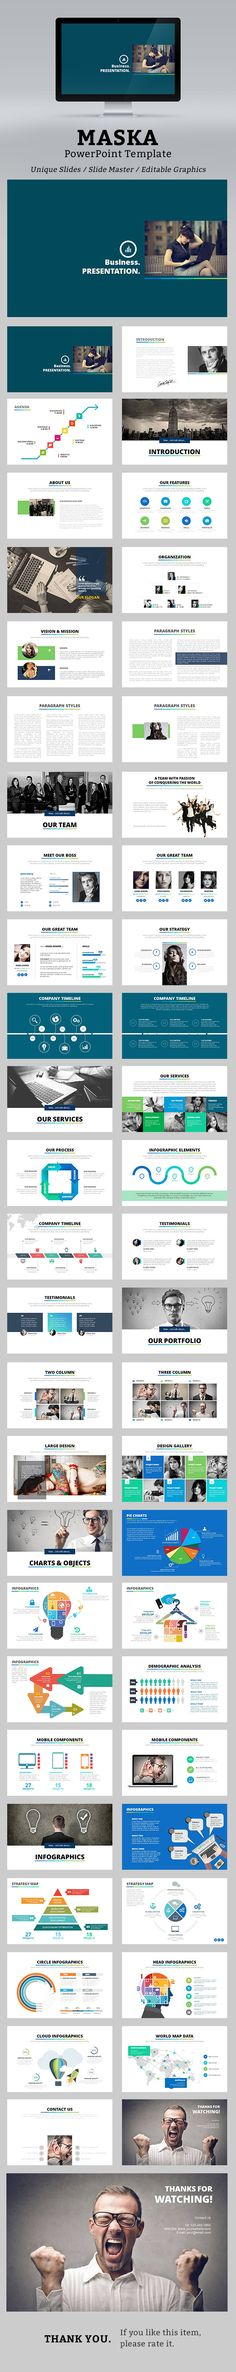 Activa powerpoint presentation template design download http maska powerpoint template design slides download httpgraphicriveritemmaska powerpoint template12957997refksioks toneelgroepblik